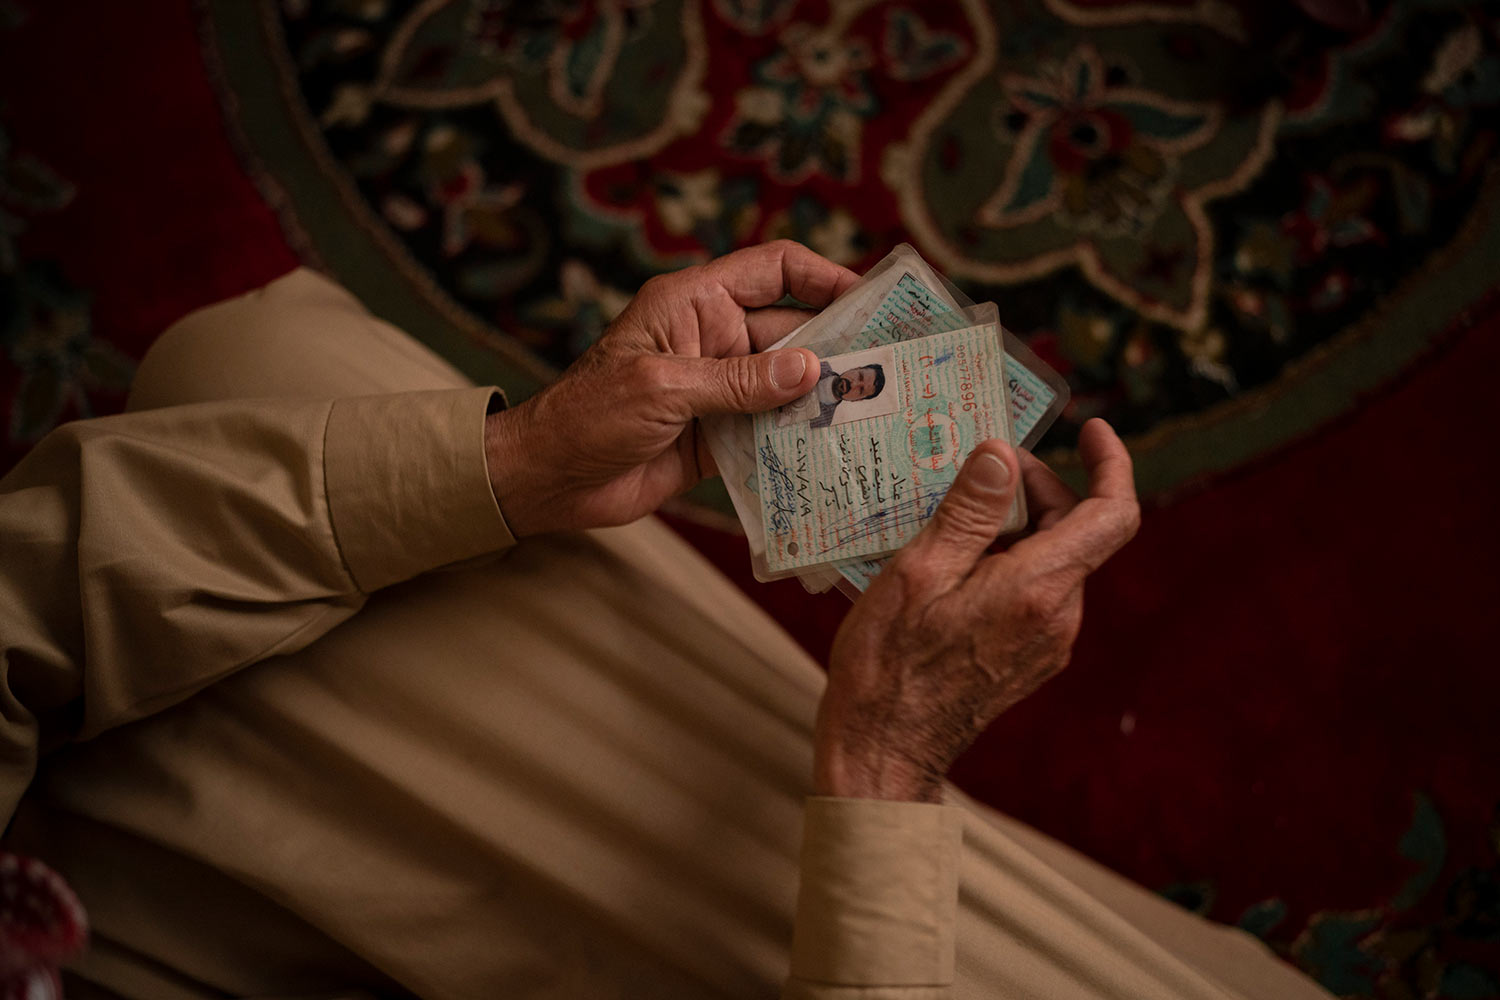 In this April 14, 2019 photo, Hussein Abd holds the ID's of his three dead sons as he sits in his house during an interview in Mosul, Iraq. They were killed in their home in Badoush by Islamic State militants in a chilling attack last January. (AP Photo/Felipe Dana)